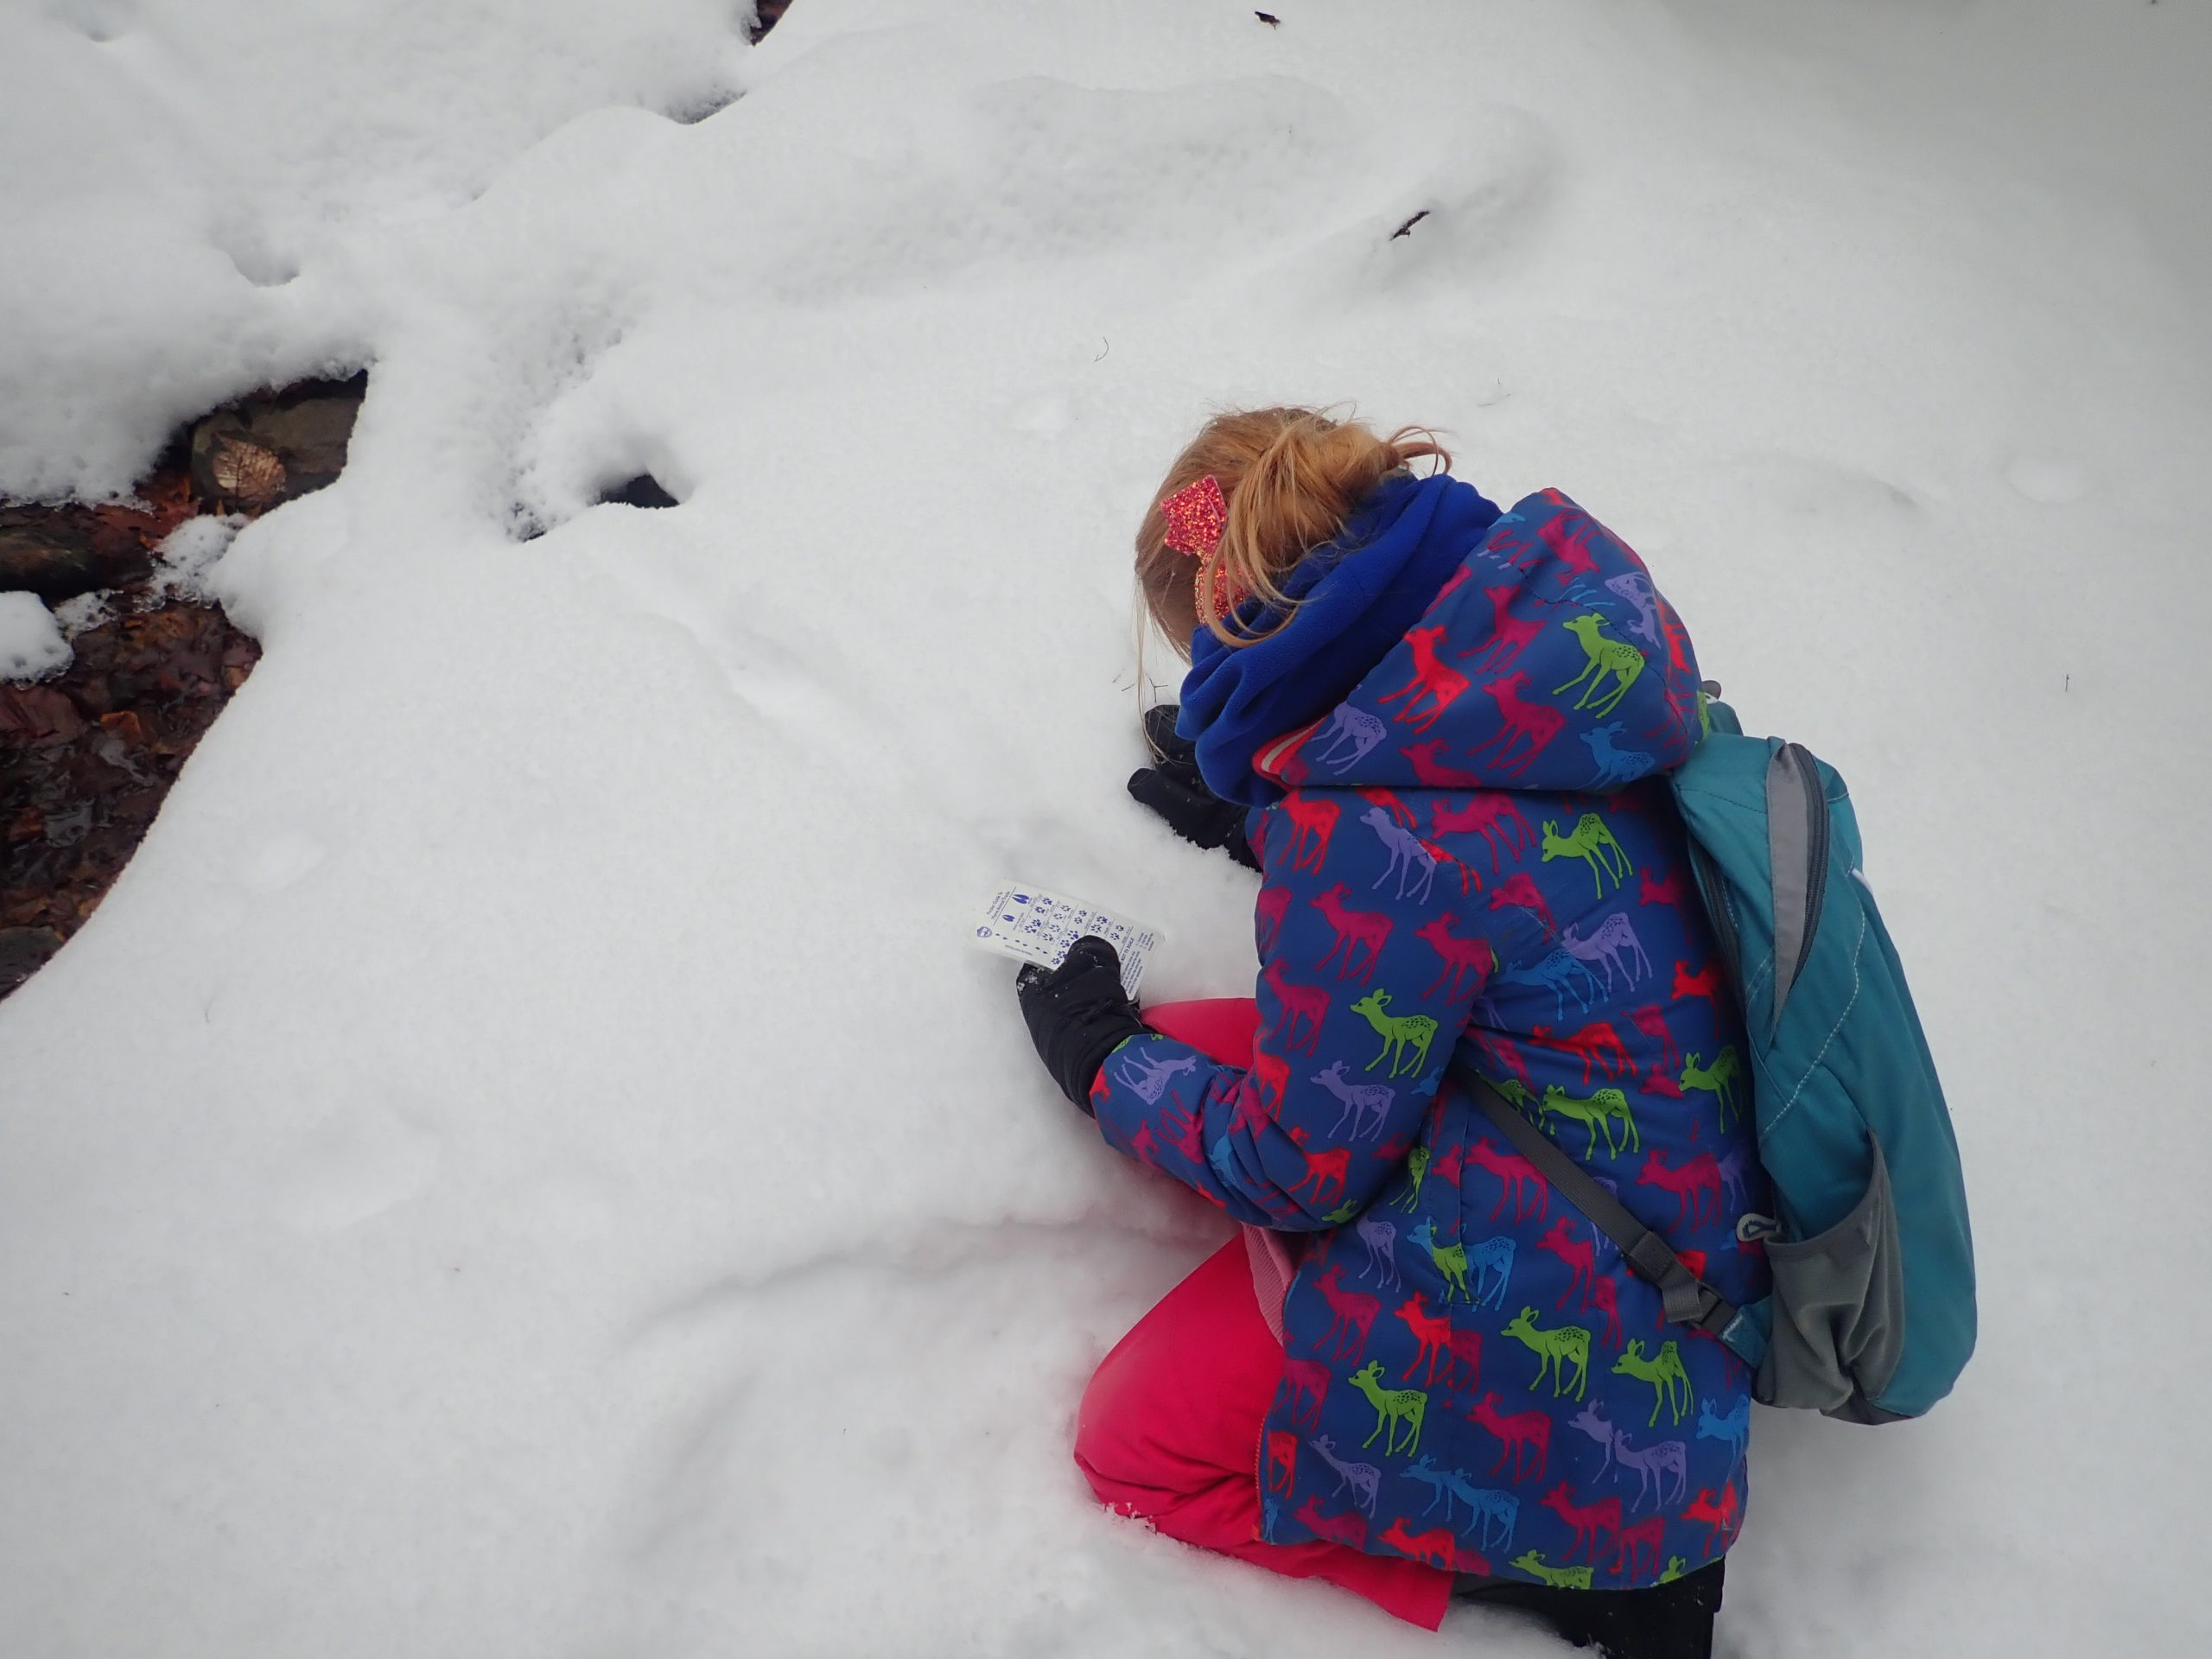 Snowy trails at Marsh River Preserve in Edgecomb provided Hearty Roots Outing Club participants with perfect conditions for identifying animal scaled.